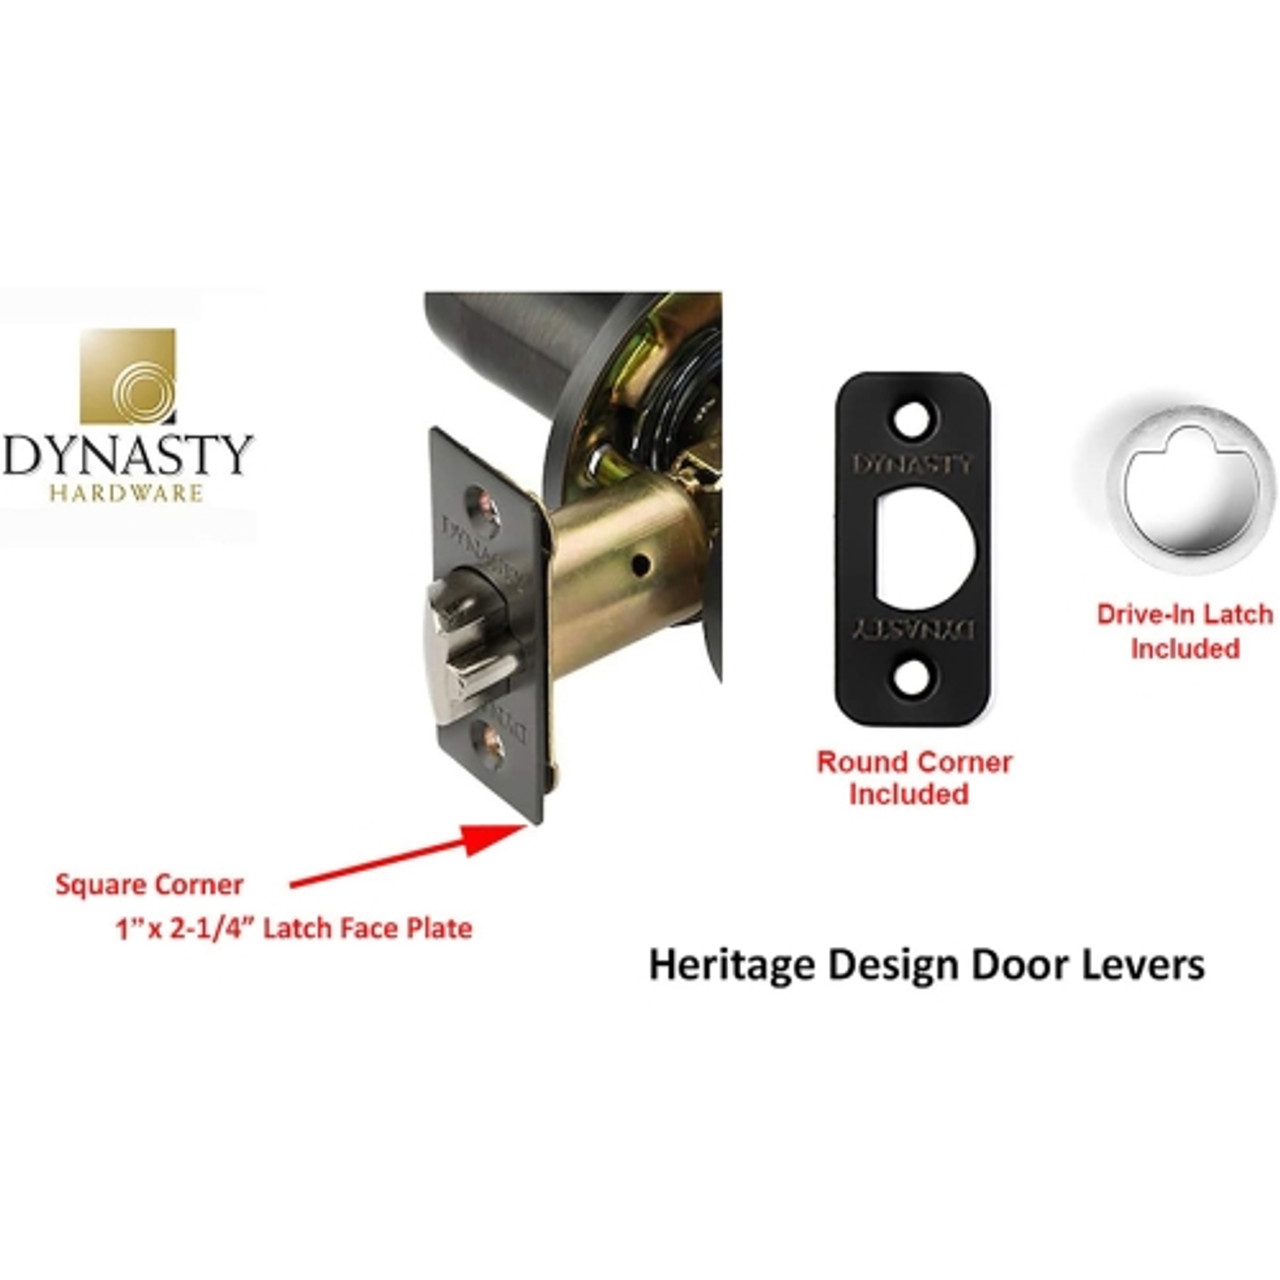 Contractor Pack 3 Pack Aged Oil Rubbed Bronze Dynasty Hardware VAI-30-12P Vail Lever Privacy Set